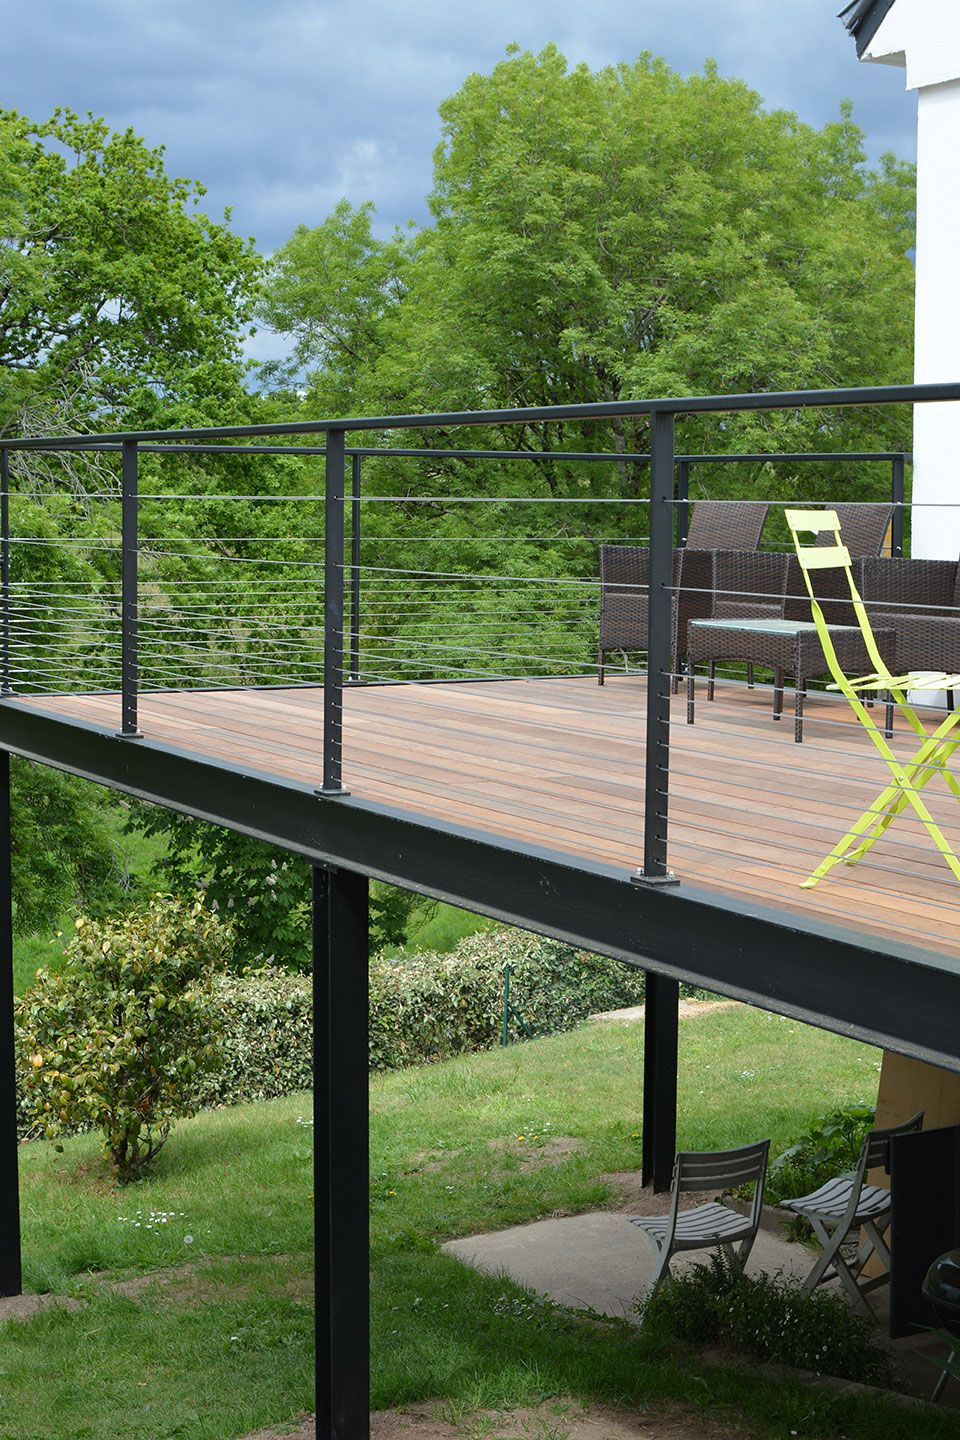 Toit Terrasse Hauteur Notable Features 1 Steel Deck Beams And Railing Allow